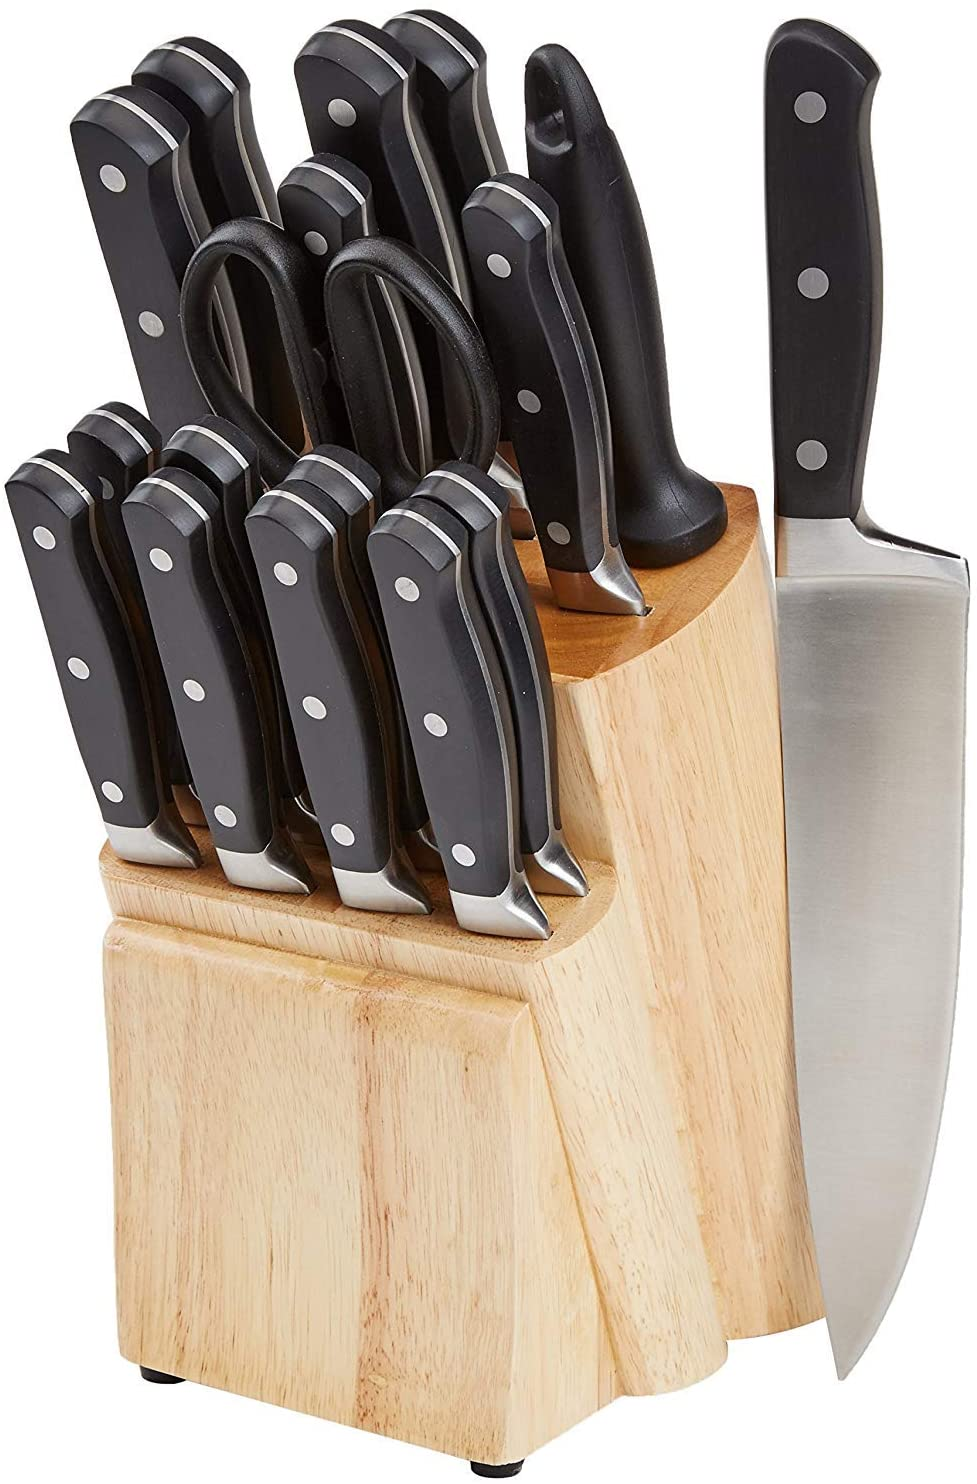 Amazon Com Amazon Basics Premium 18 Piece Kitchen Knife Block Set Kitchen Dining